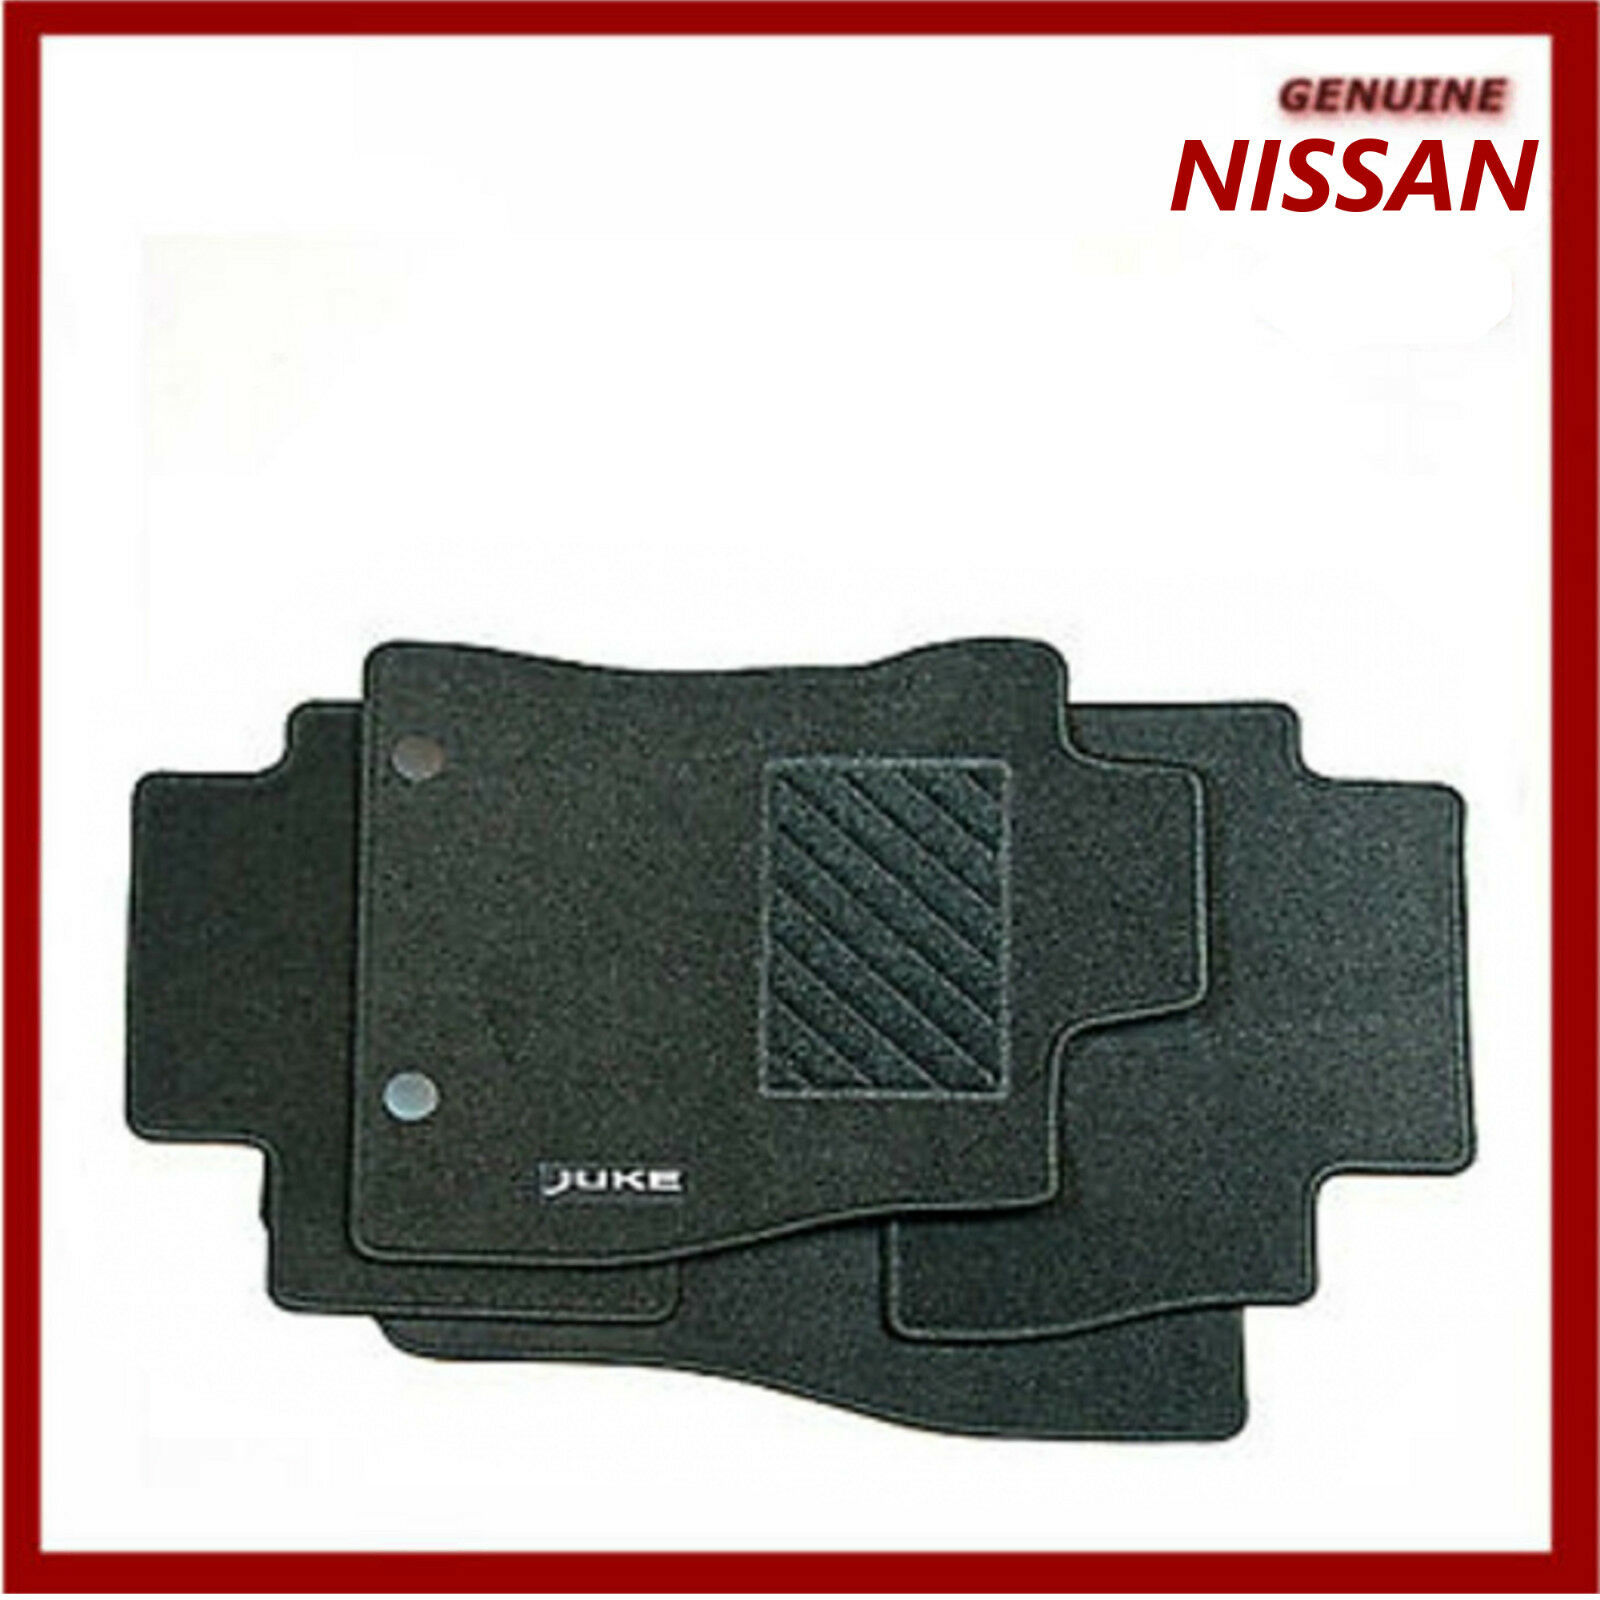 Car Parts - Genuine Nissan Juke 2011- Tailored Textile Carpet Car Mats KE7551K021